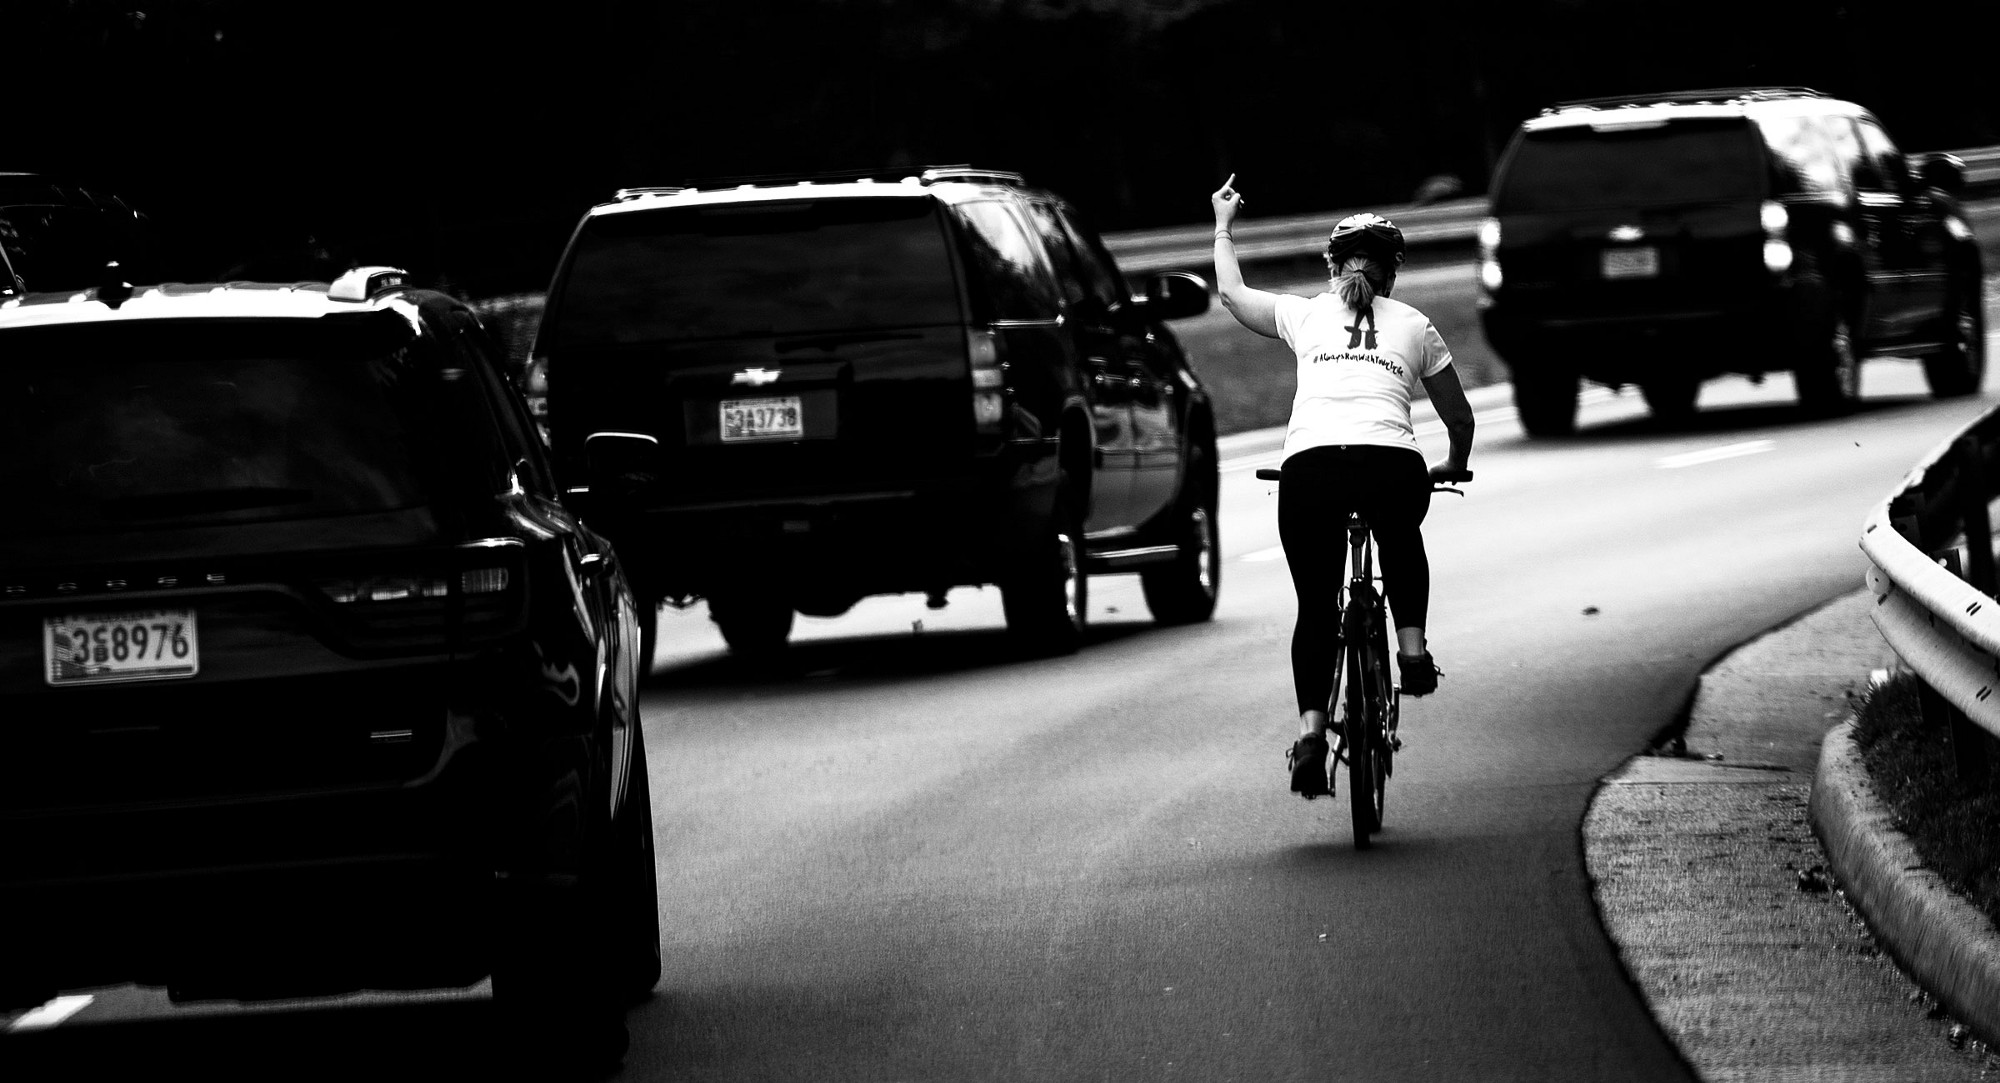 Cyclist who flipped off Trump's motorcade fired from her job